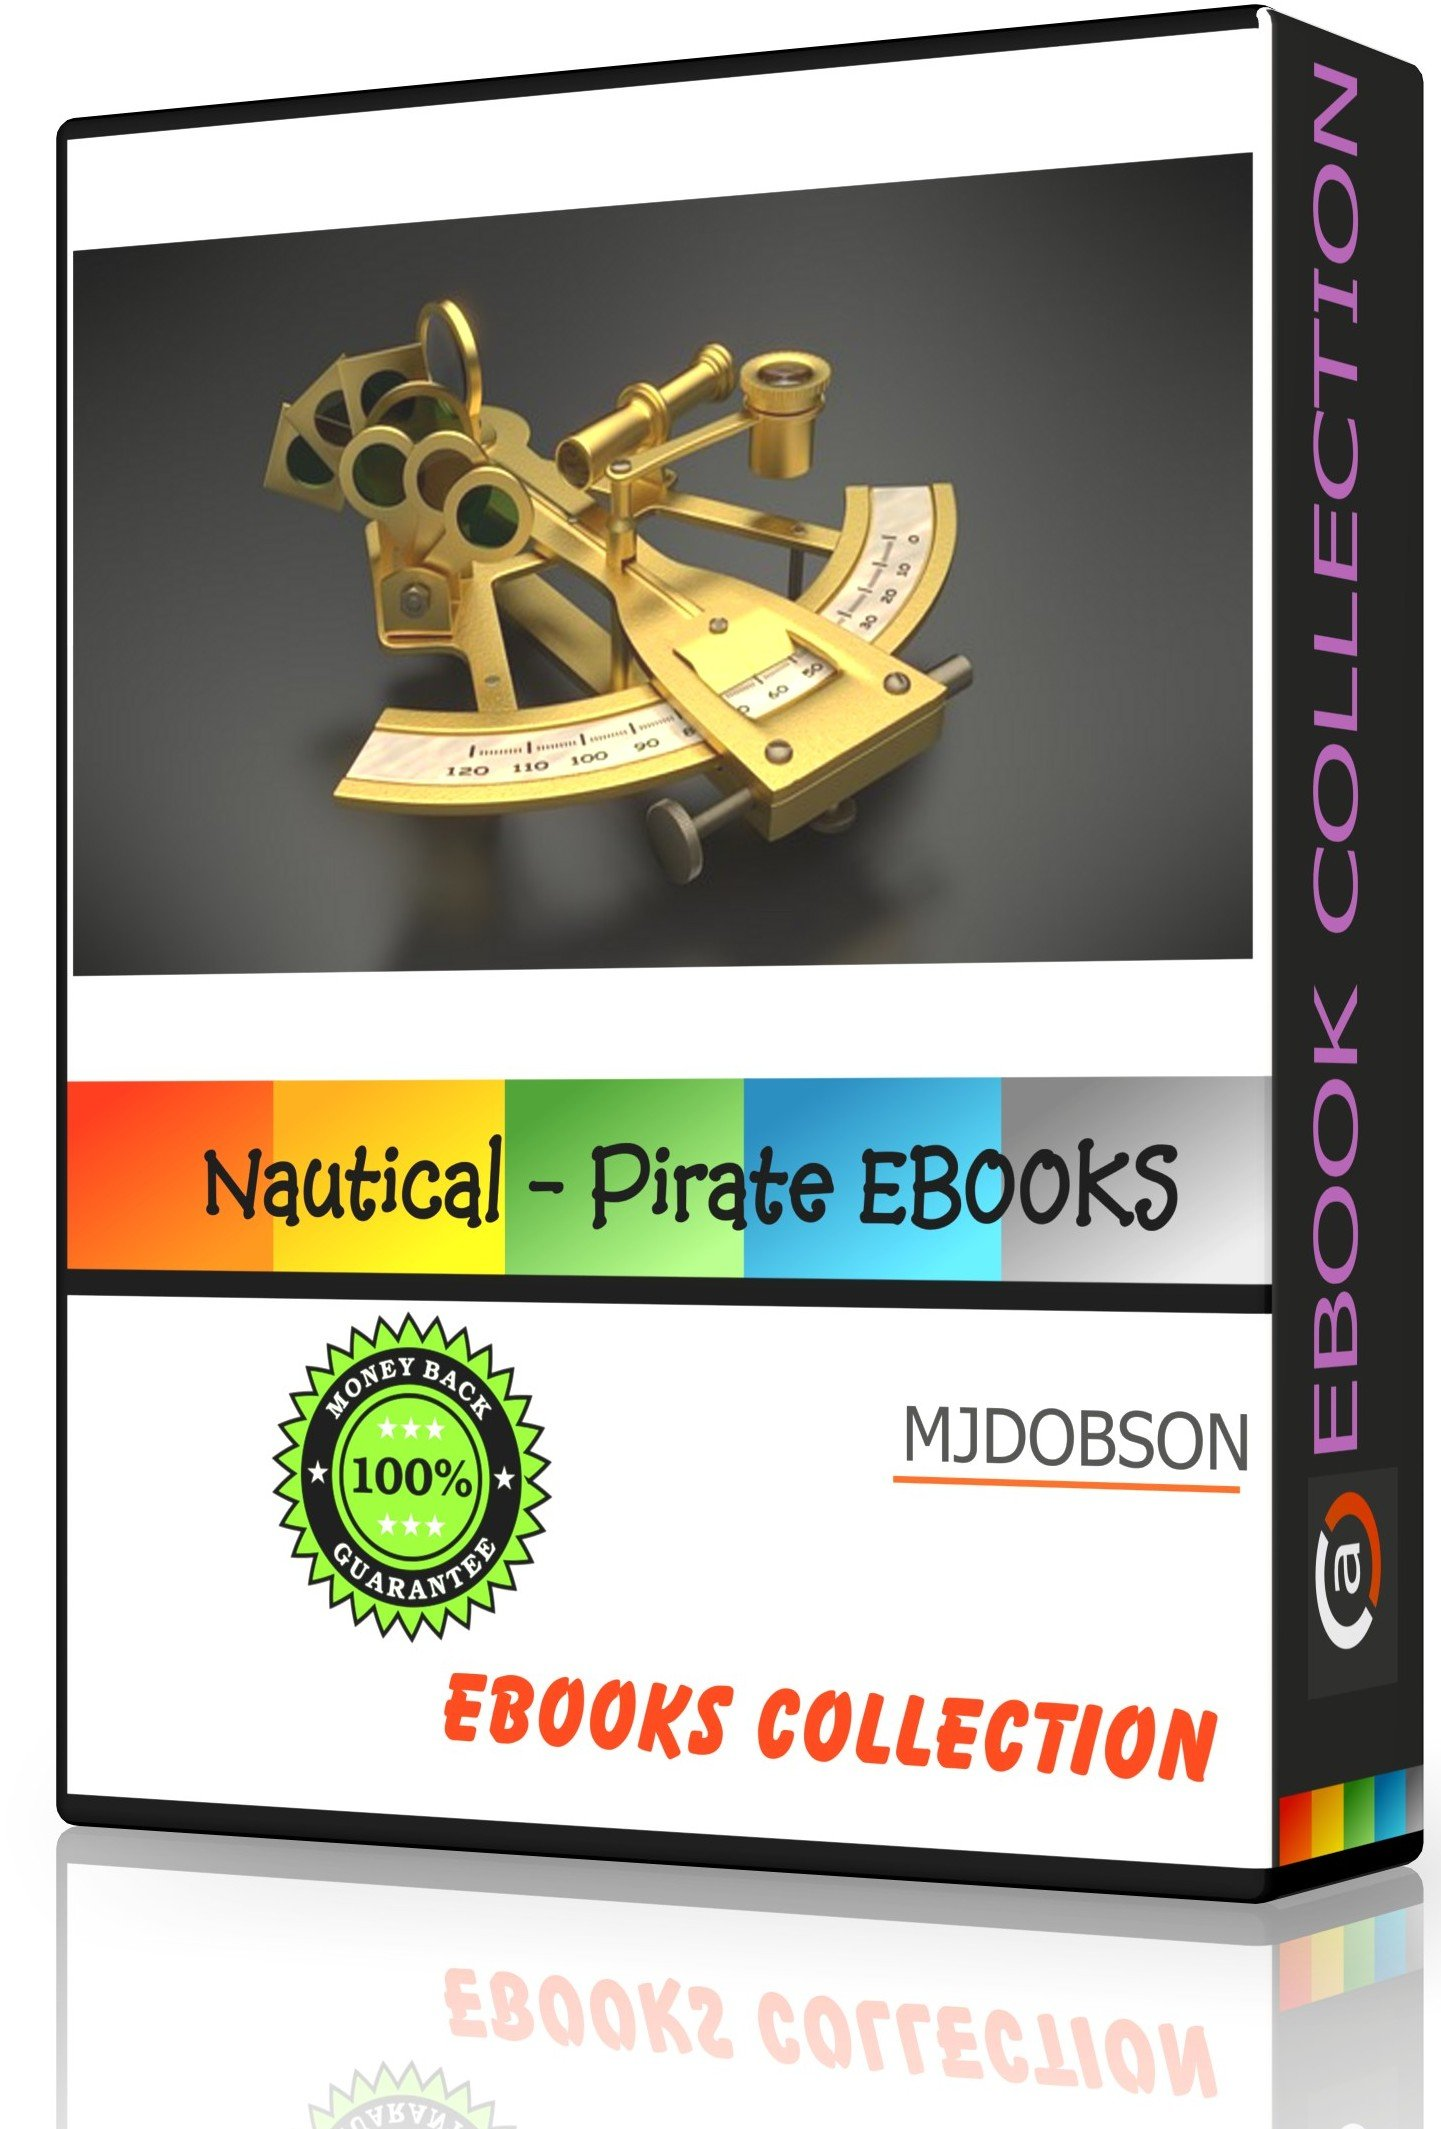 Nautical Sea Pirate Ebooks For Kindle, Sony Readers